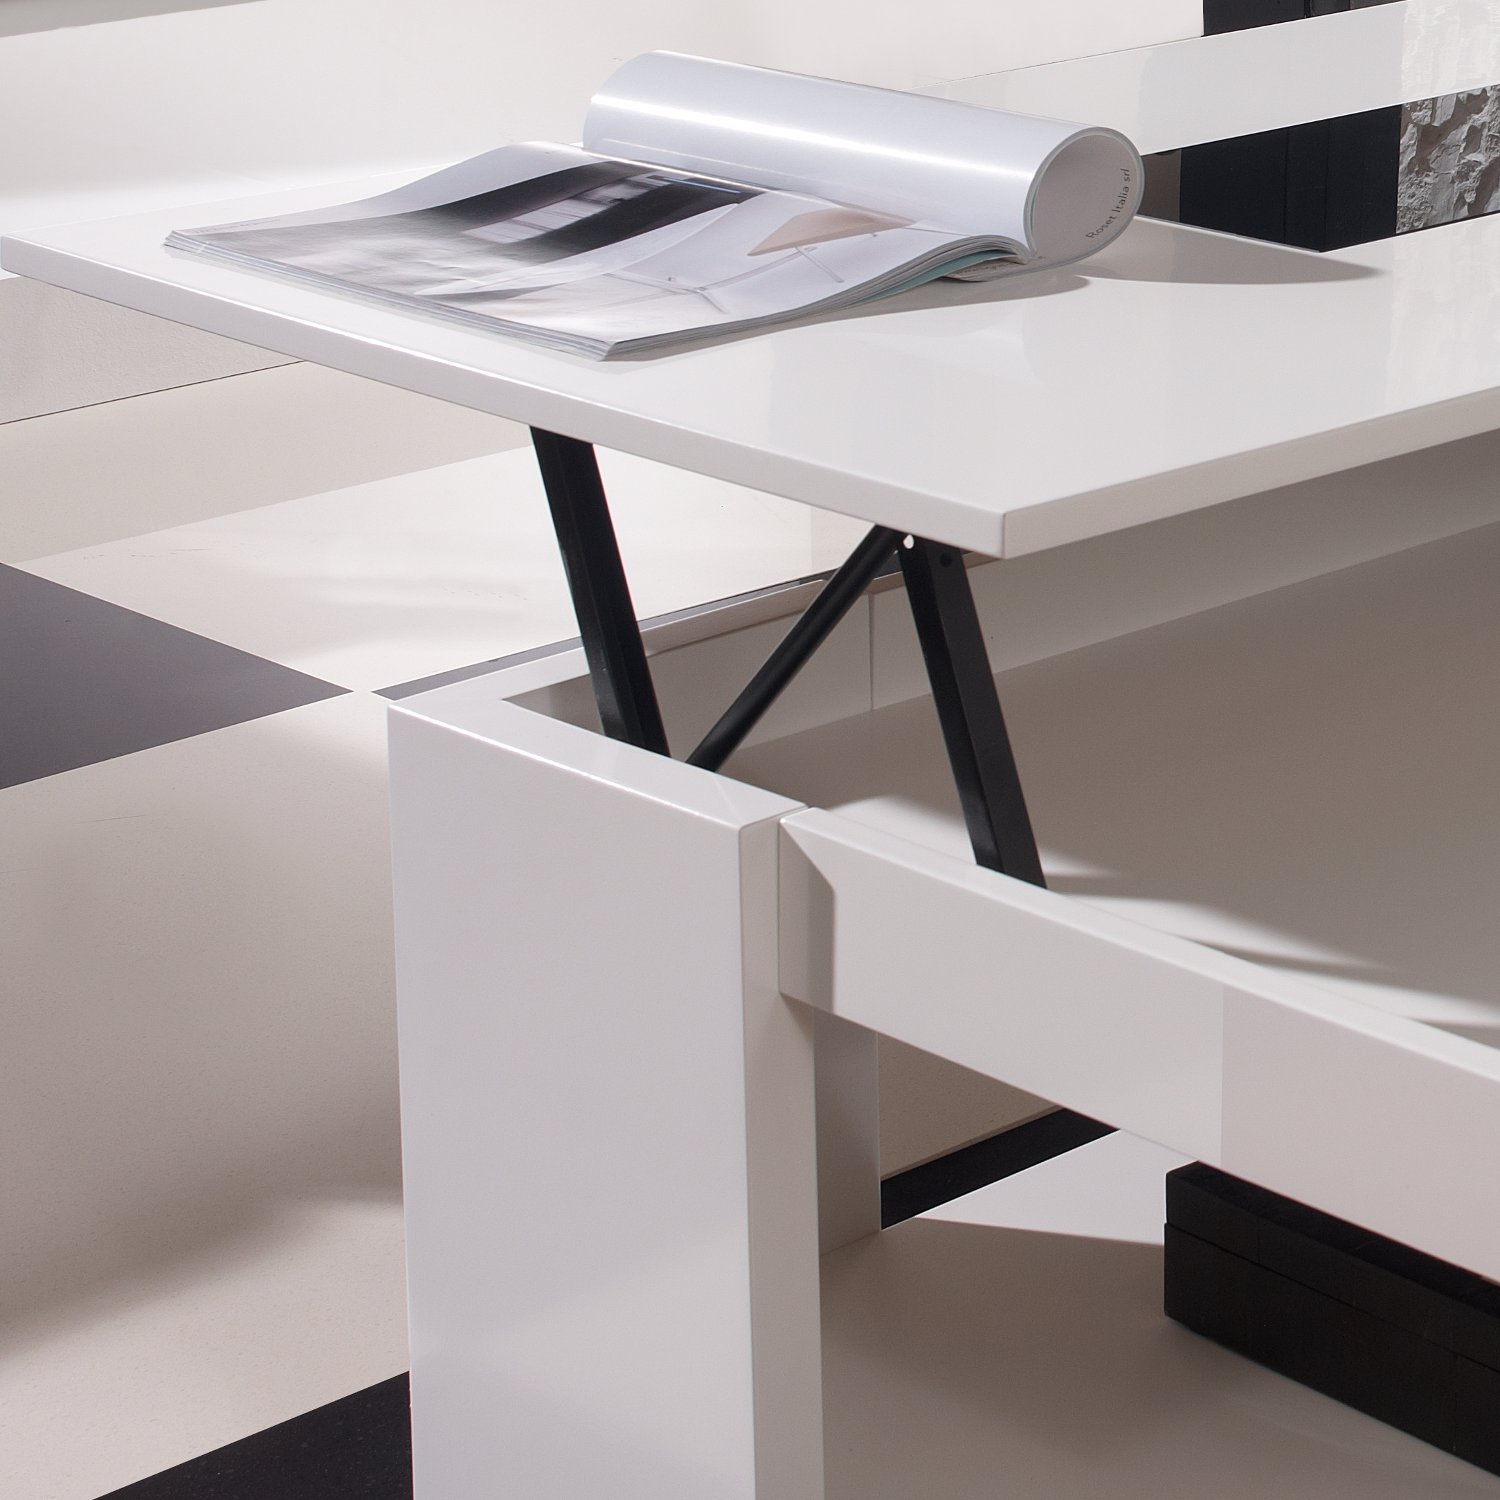 La table basse relevable r volutionne le salon d co et for Table de salon relevable